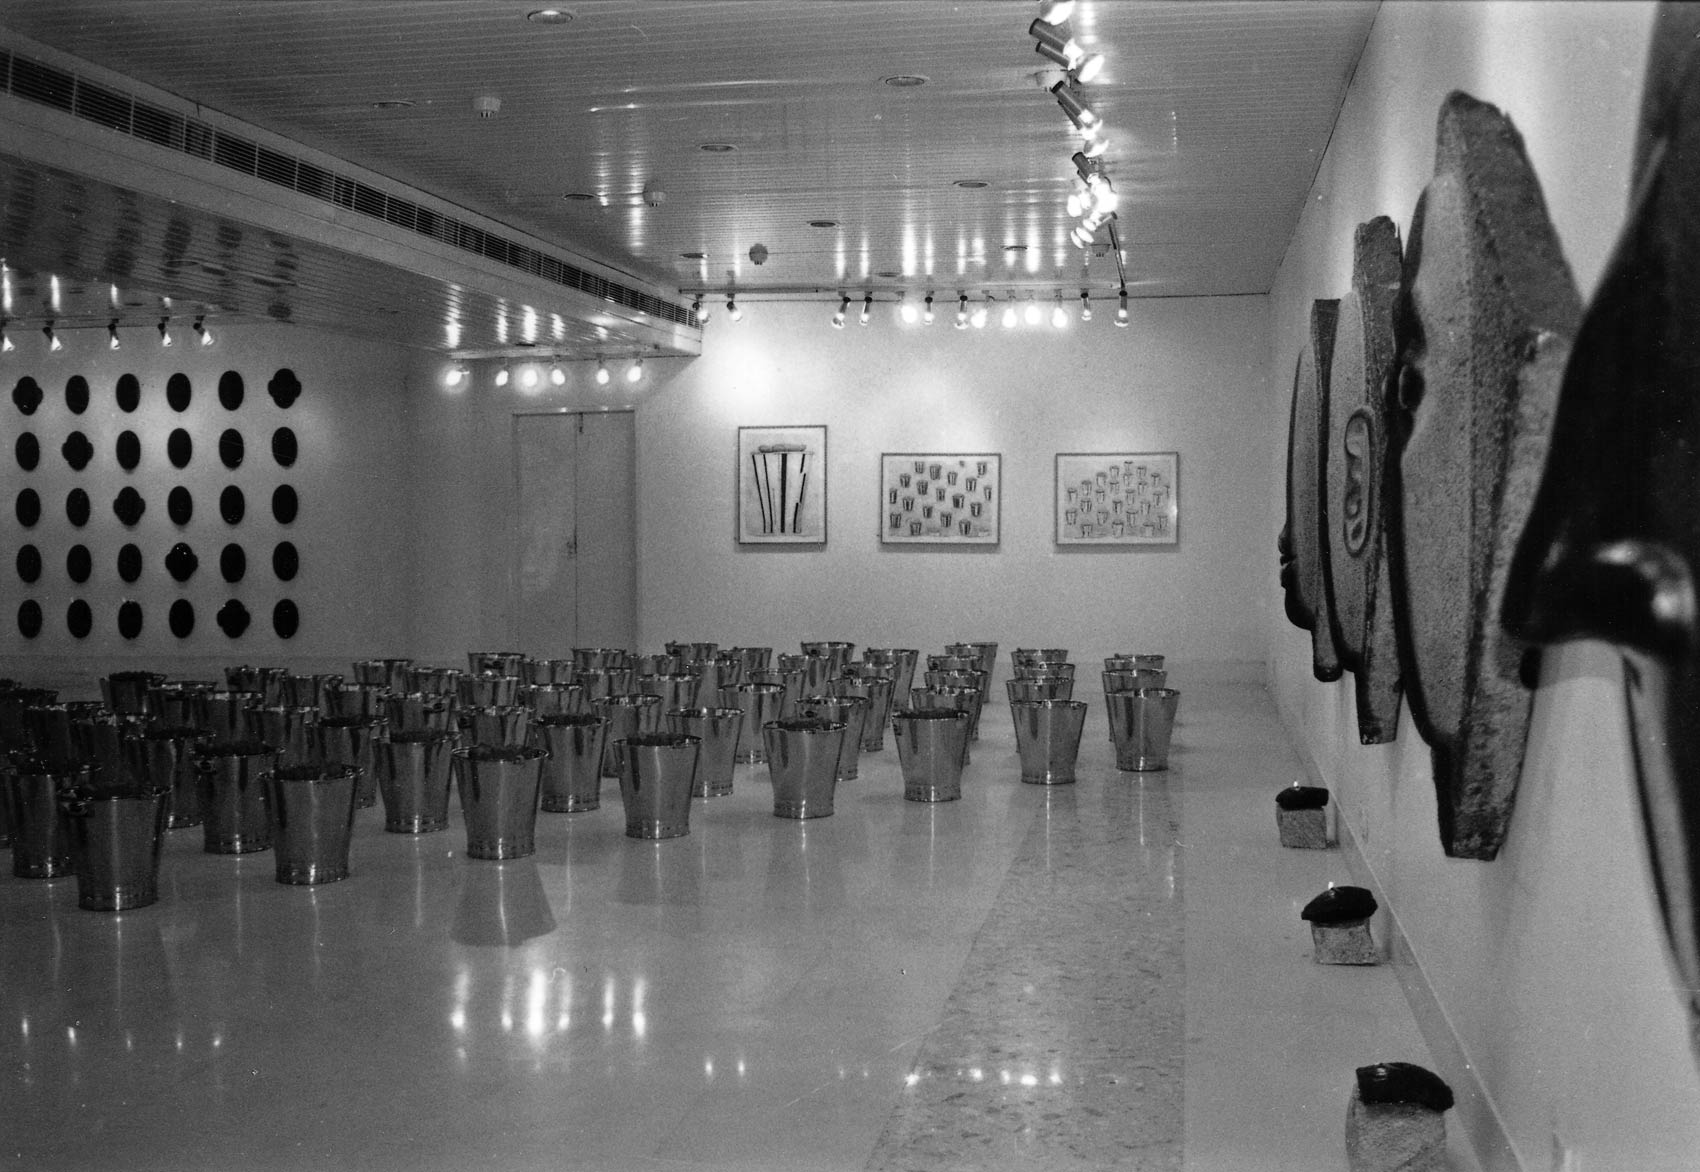 This piece was exhibited in 1996 in New Delhi: 'An Indian Decade, Art Today Gallery, Ajanta Gallery, New Delhi, Jamali Kamali Gardens, India' -